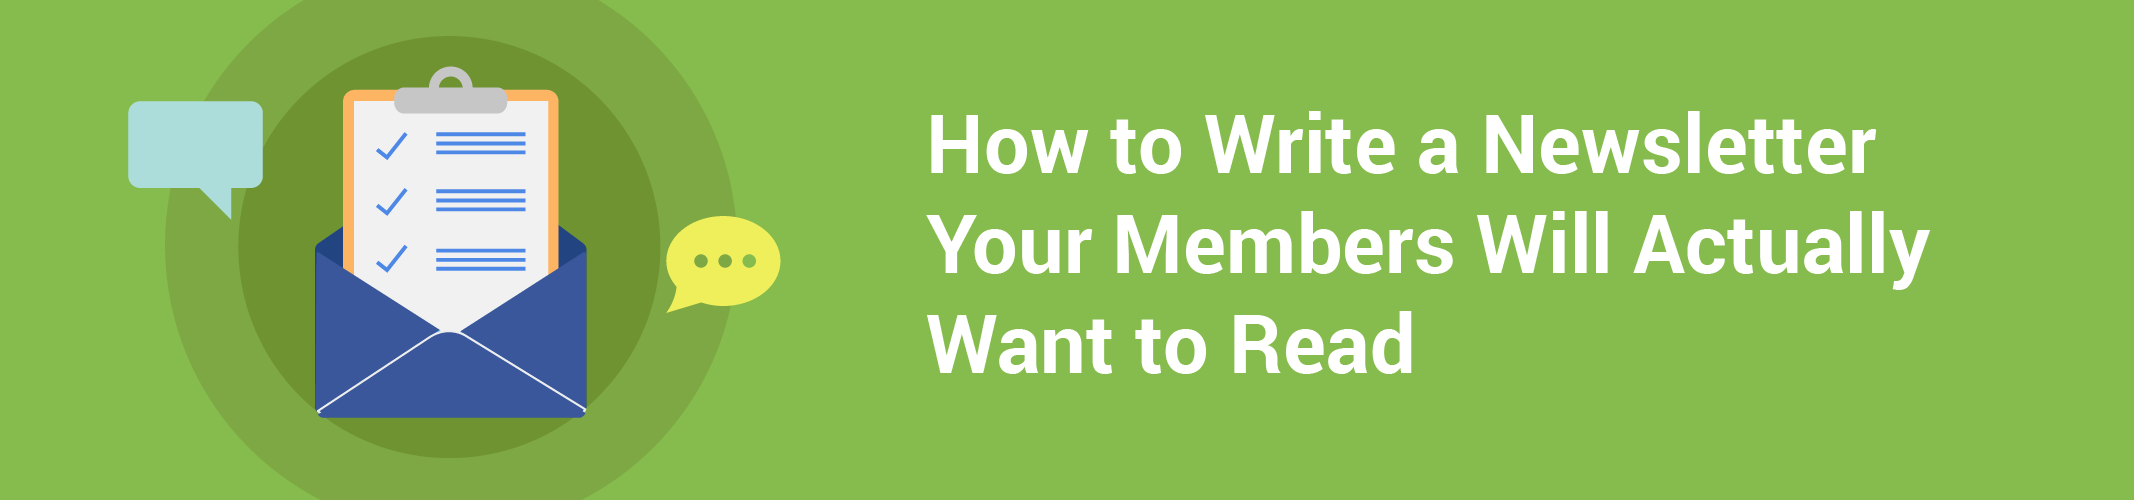 How to Write a Newsletter Your Members Will Actually Want to Read_header_charityhowto